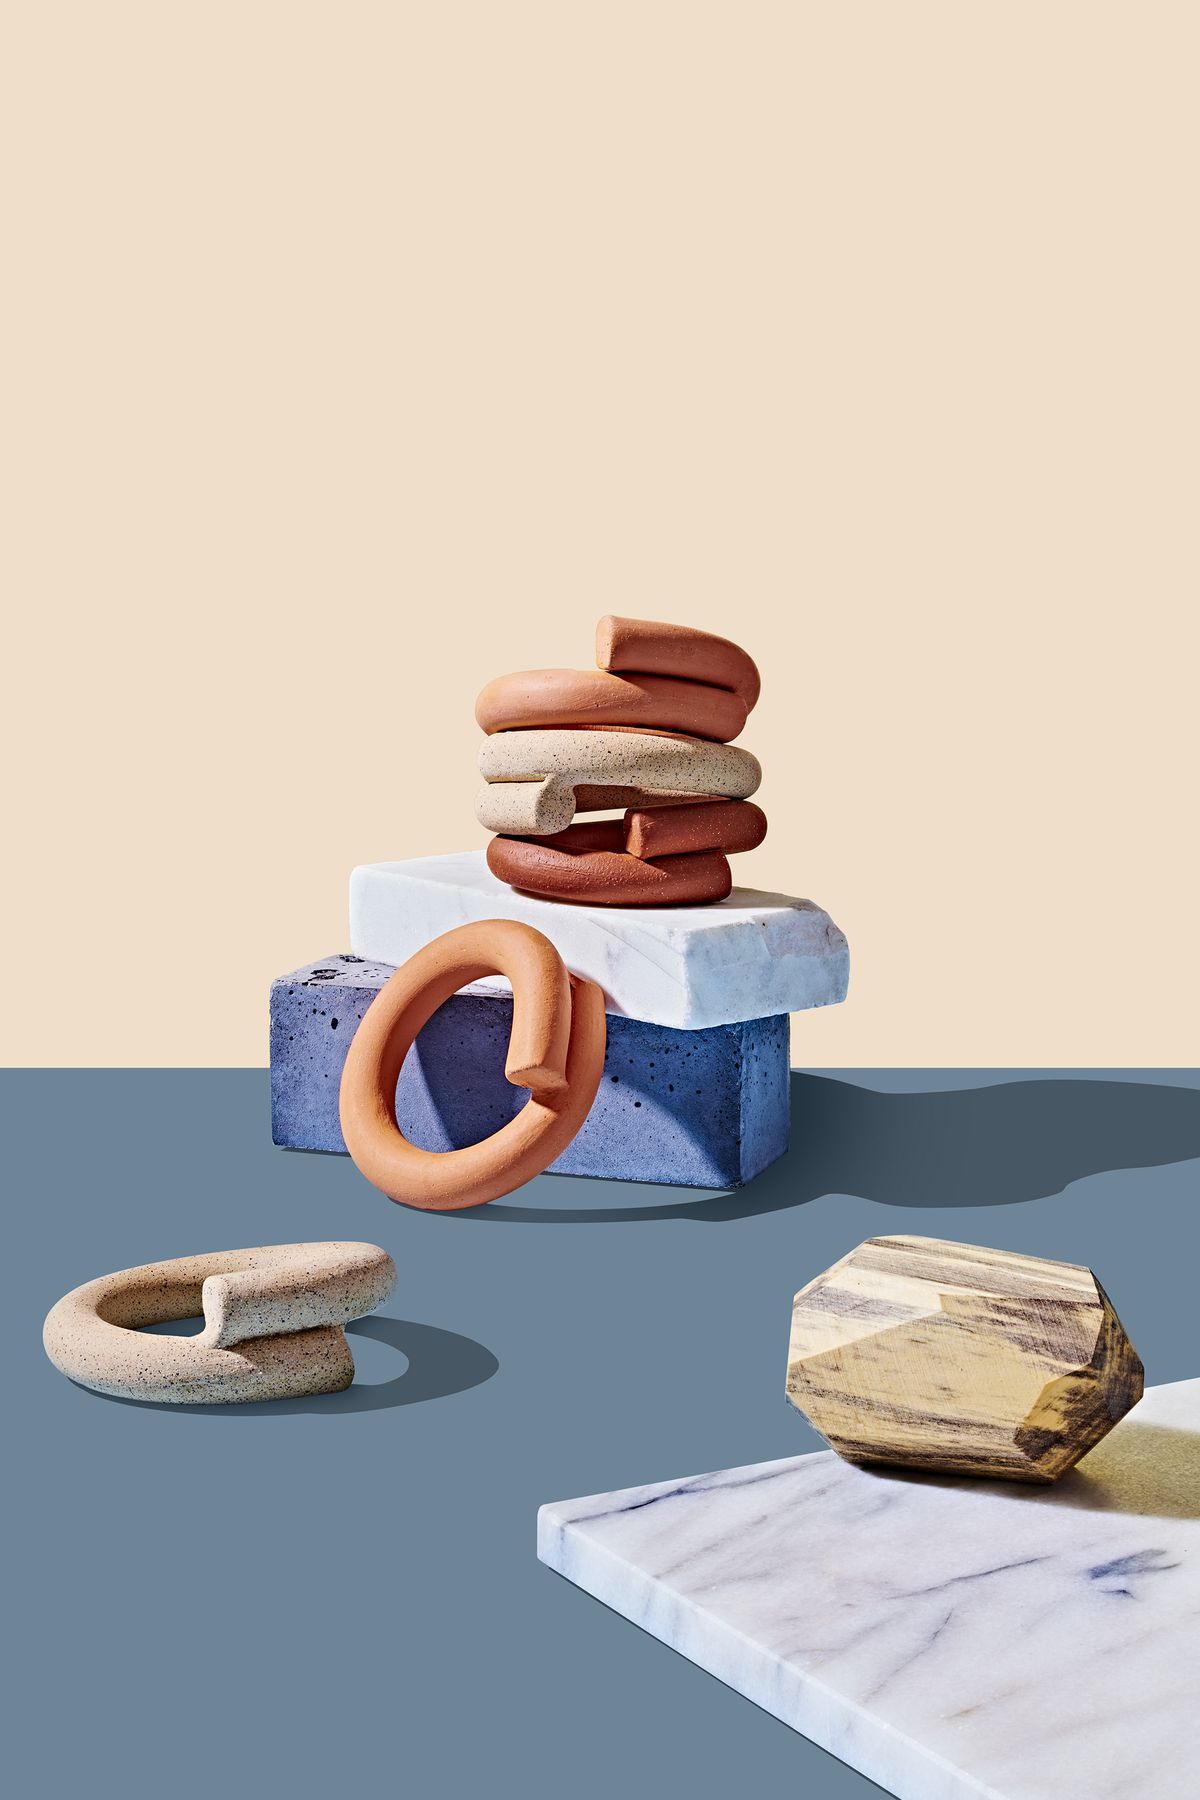 A group of earth toned handmade ceramic napkin rings stacked on top of each other. These are part of the 2019 Holiday Gift Guide for Curbed. The rings are sitting on design objects on a flat blue surface. There is an ivory colored backdrop.